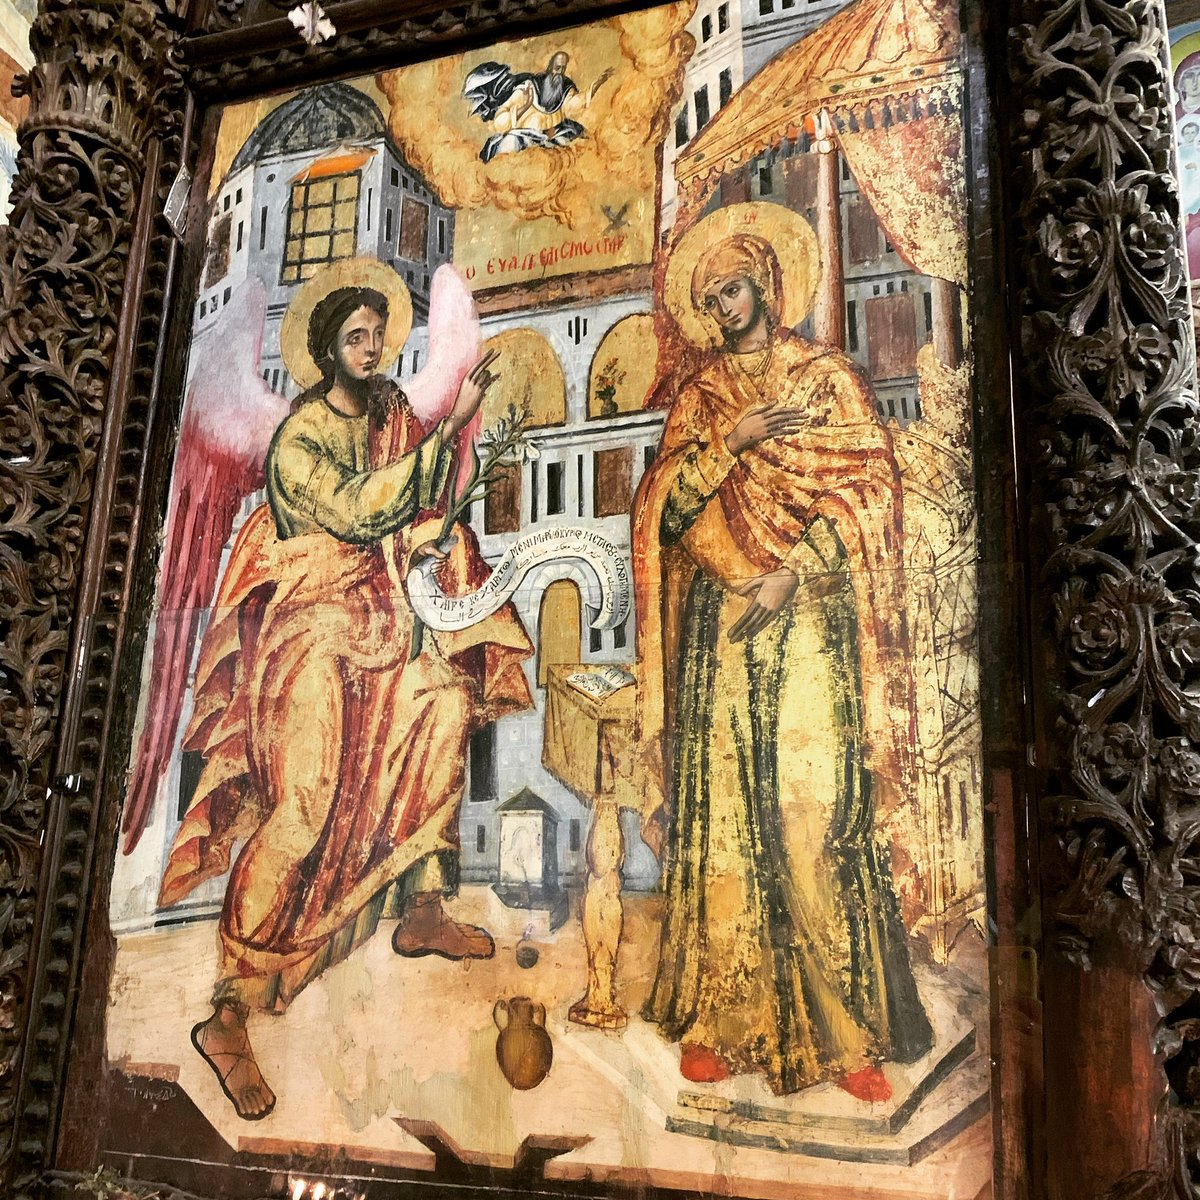 Blessed Feast of the #Annunciation! ✝️ ❤️ #GreekOrthodoxChurch #LiveOrthodoxy #GreatLent #HolyLand